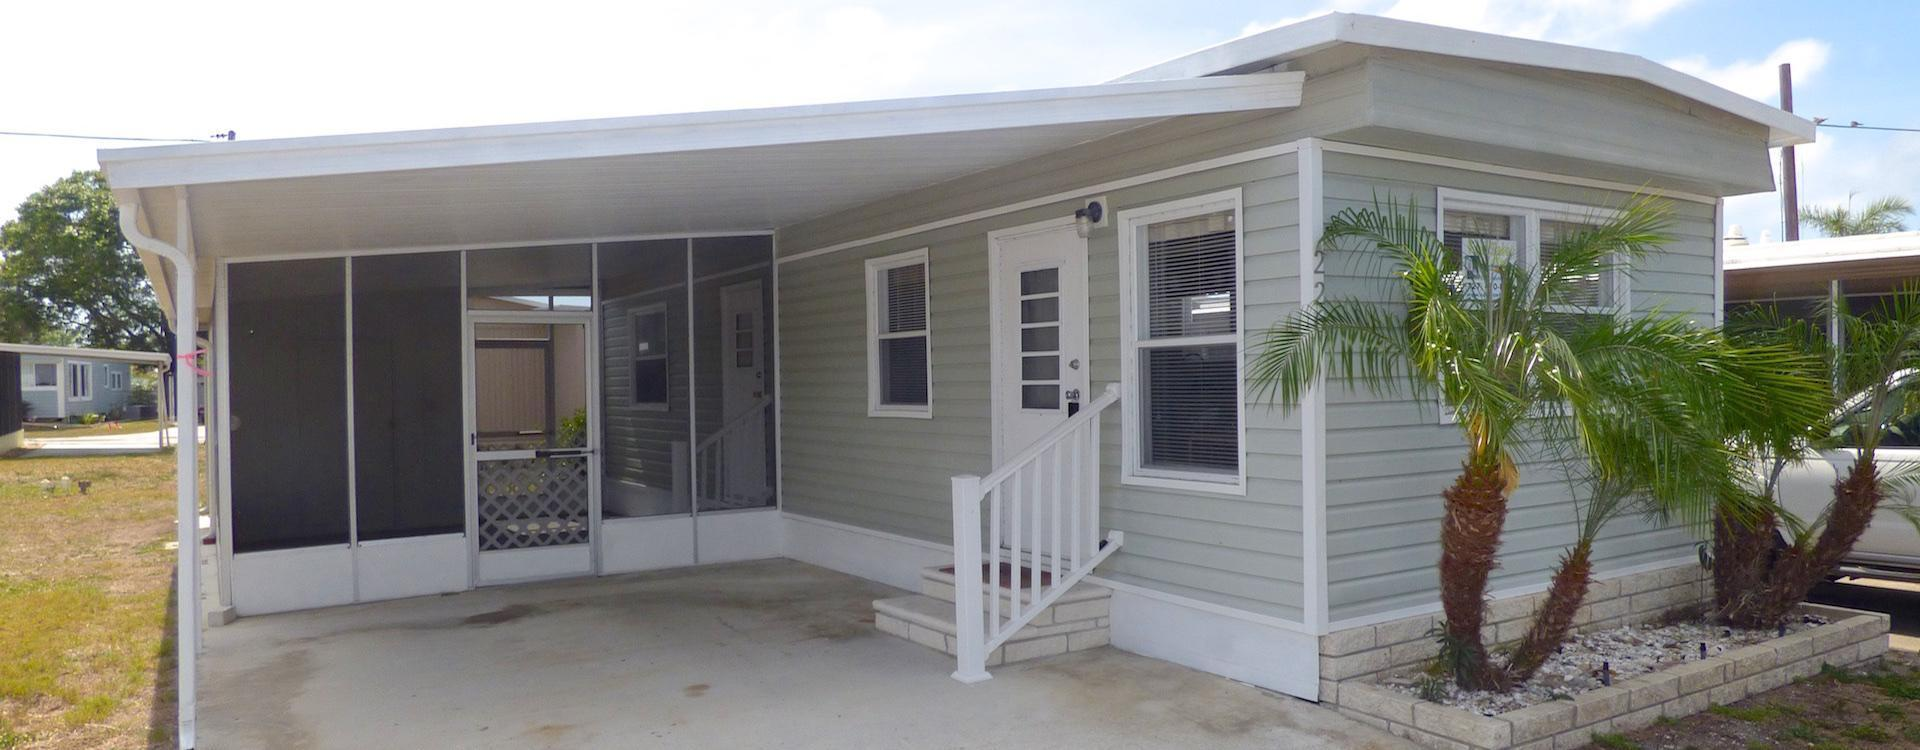 Mobile-Home-For-Sale-20170404-001-Wide Vacation Mobile Homes on florida homes, mountainside homes, lake homes, oceanfront homes, exotic homes, prefab homes, beautiful homes, beach homes, outer banks north carolina homes, luxury homes, coastal homes, modern homes, tropical homes, victorian homes, rental homes, condo homes, real state homes, duck north carolina homes, winter homes, waterfront homes,